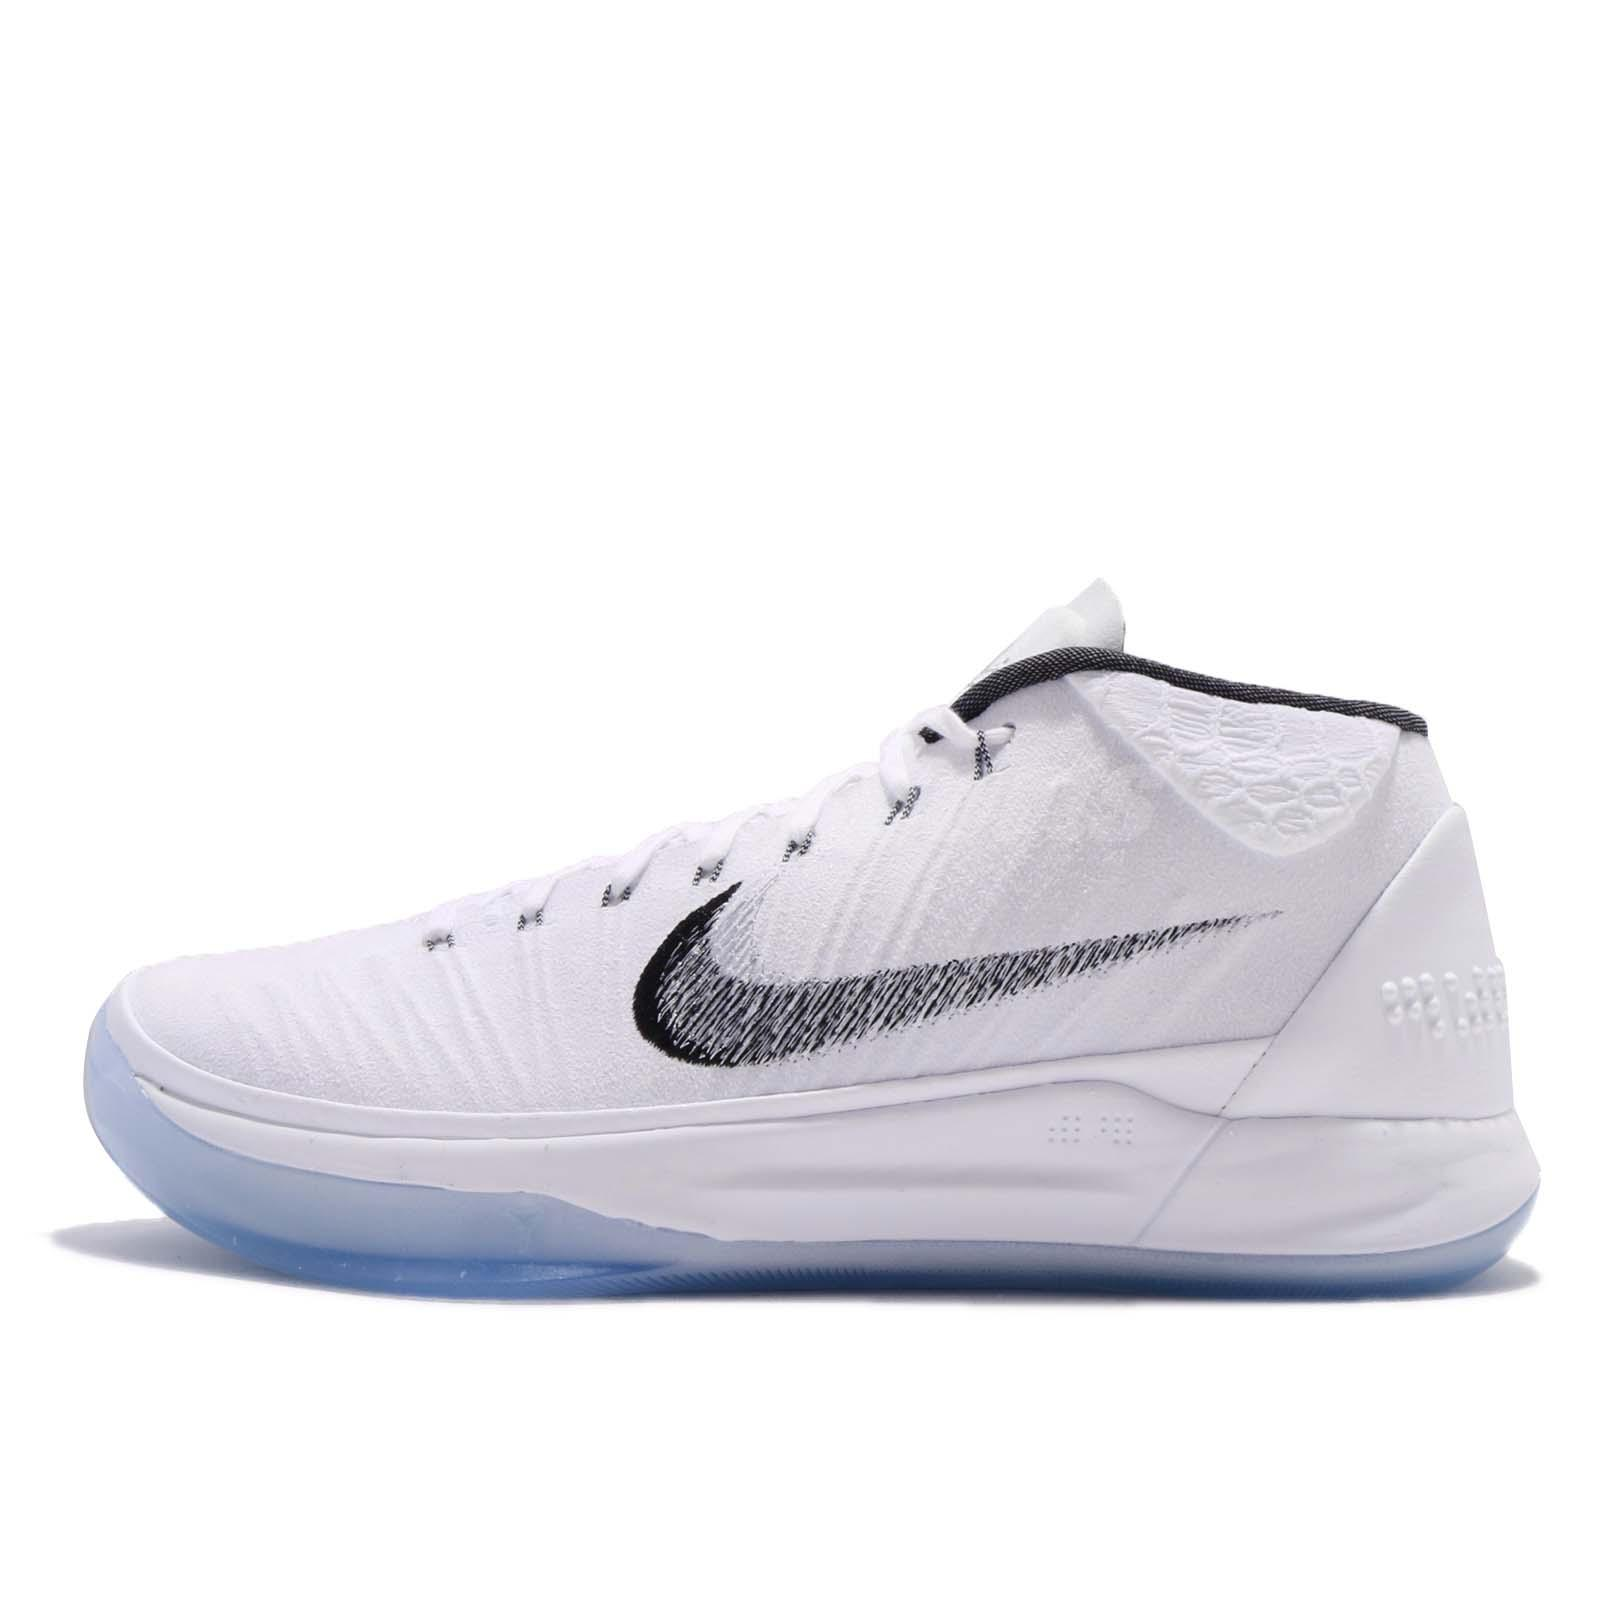 c4d504d19bd2 ... cheap nike kobe ad ep bryant white metallic sikver ice men basketball  shoes ao9050 100 90618